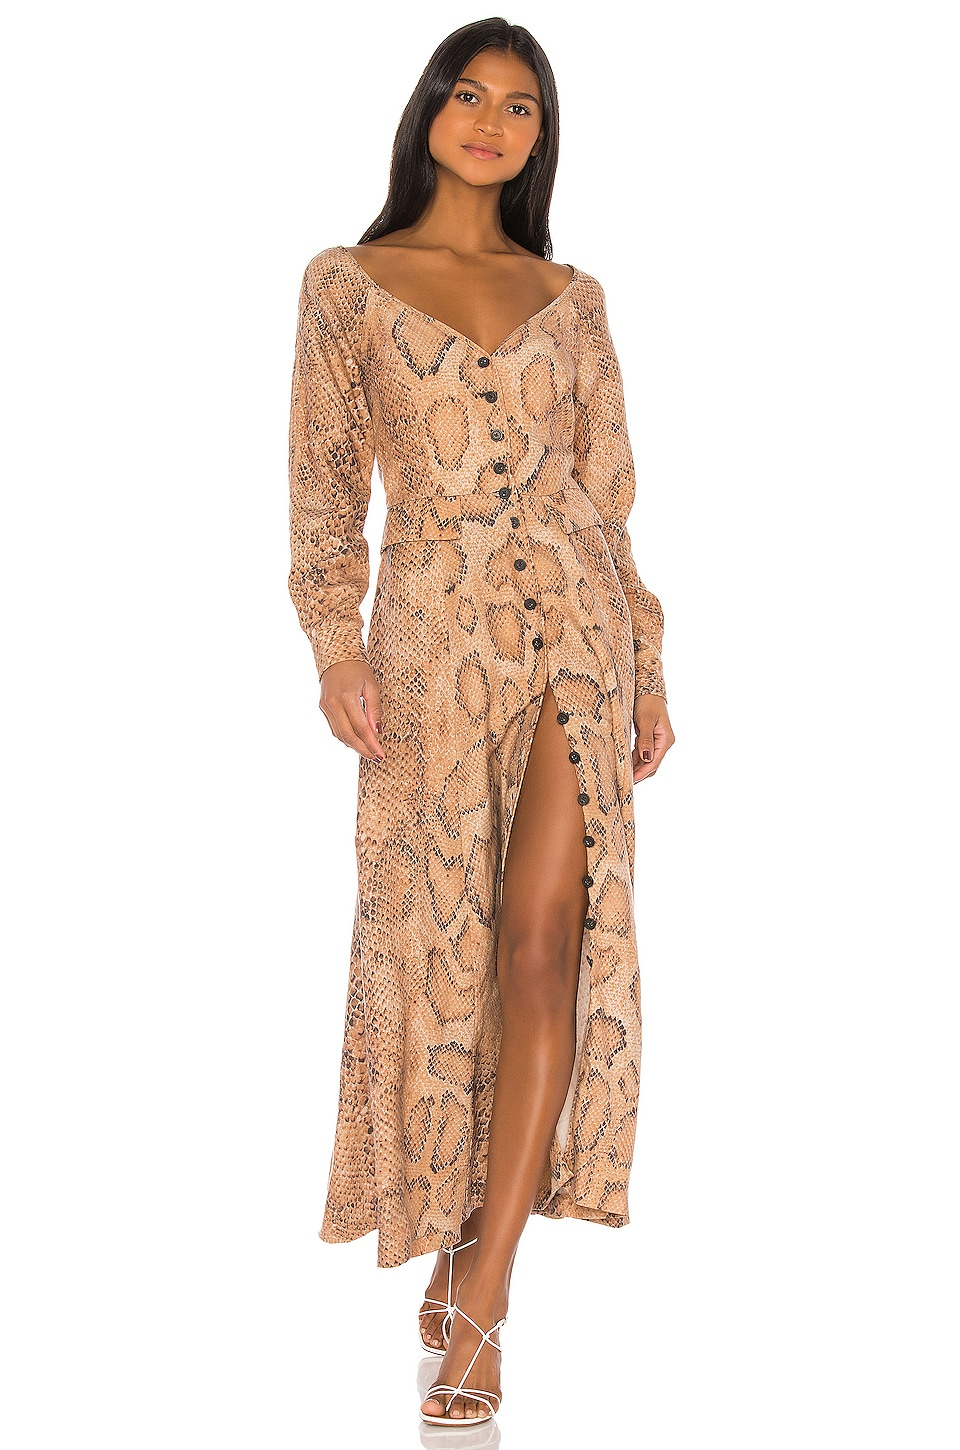 Mara Hoffman Silvana Dress in Sand Multi